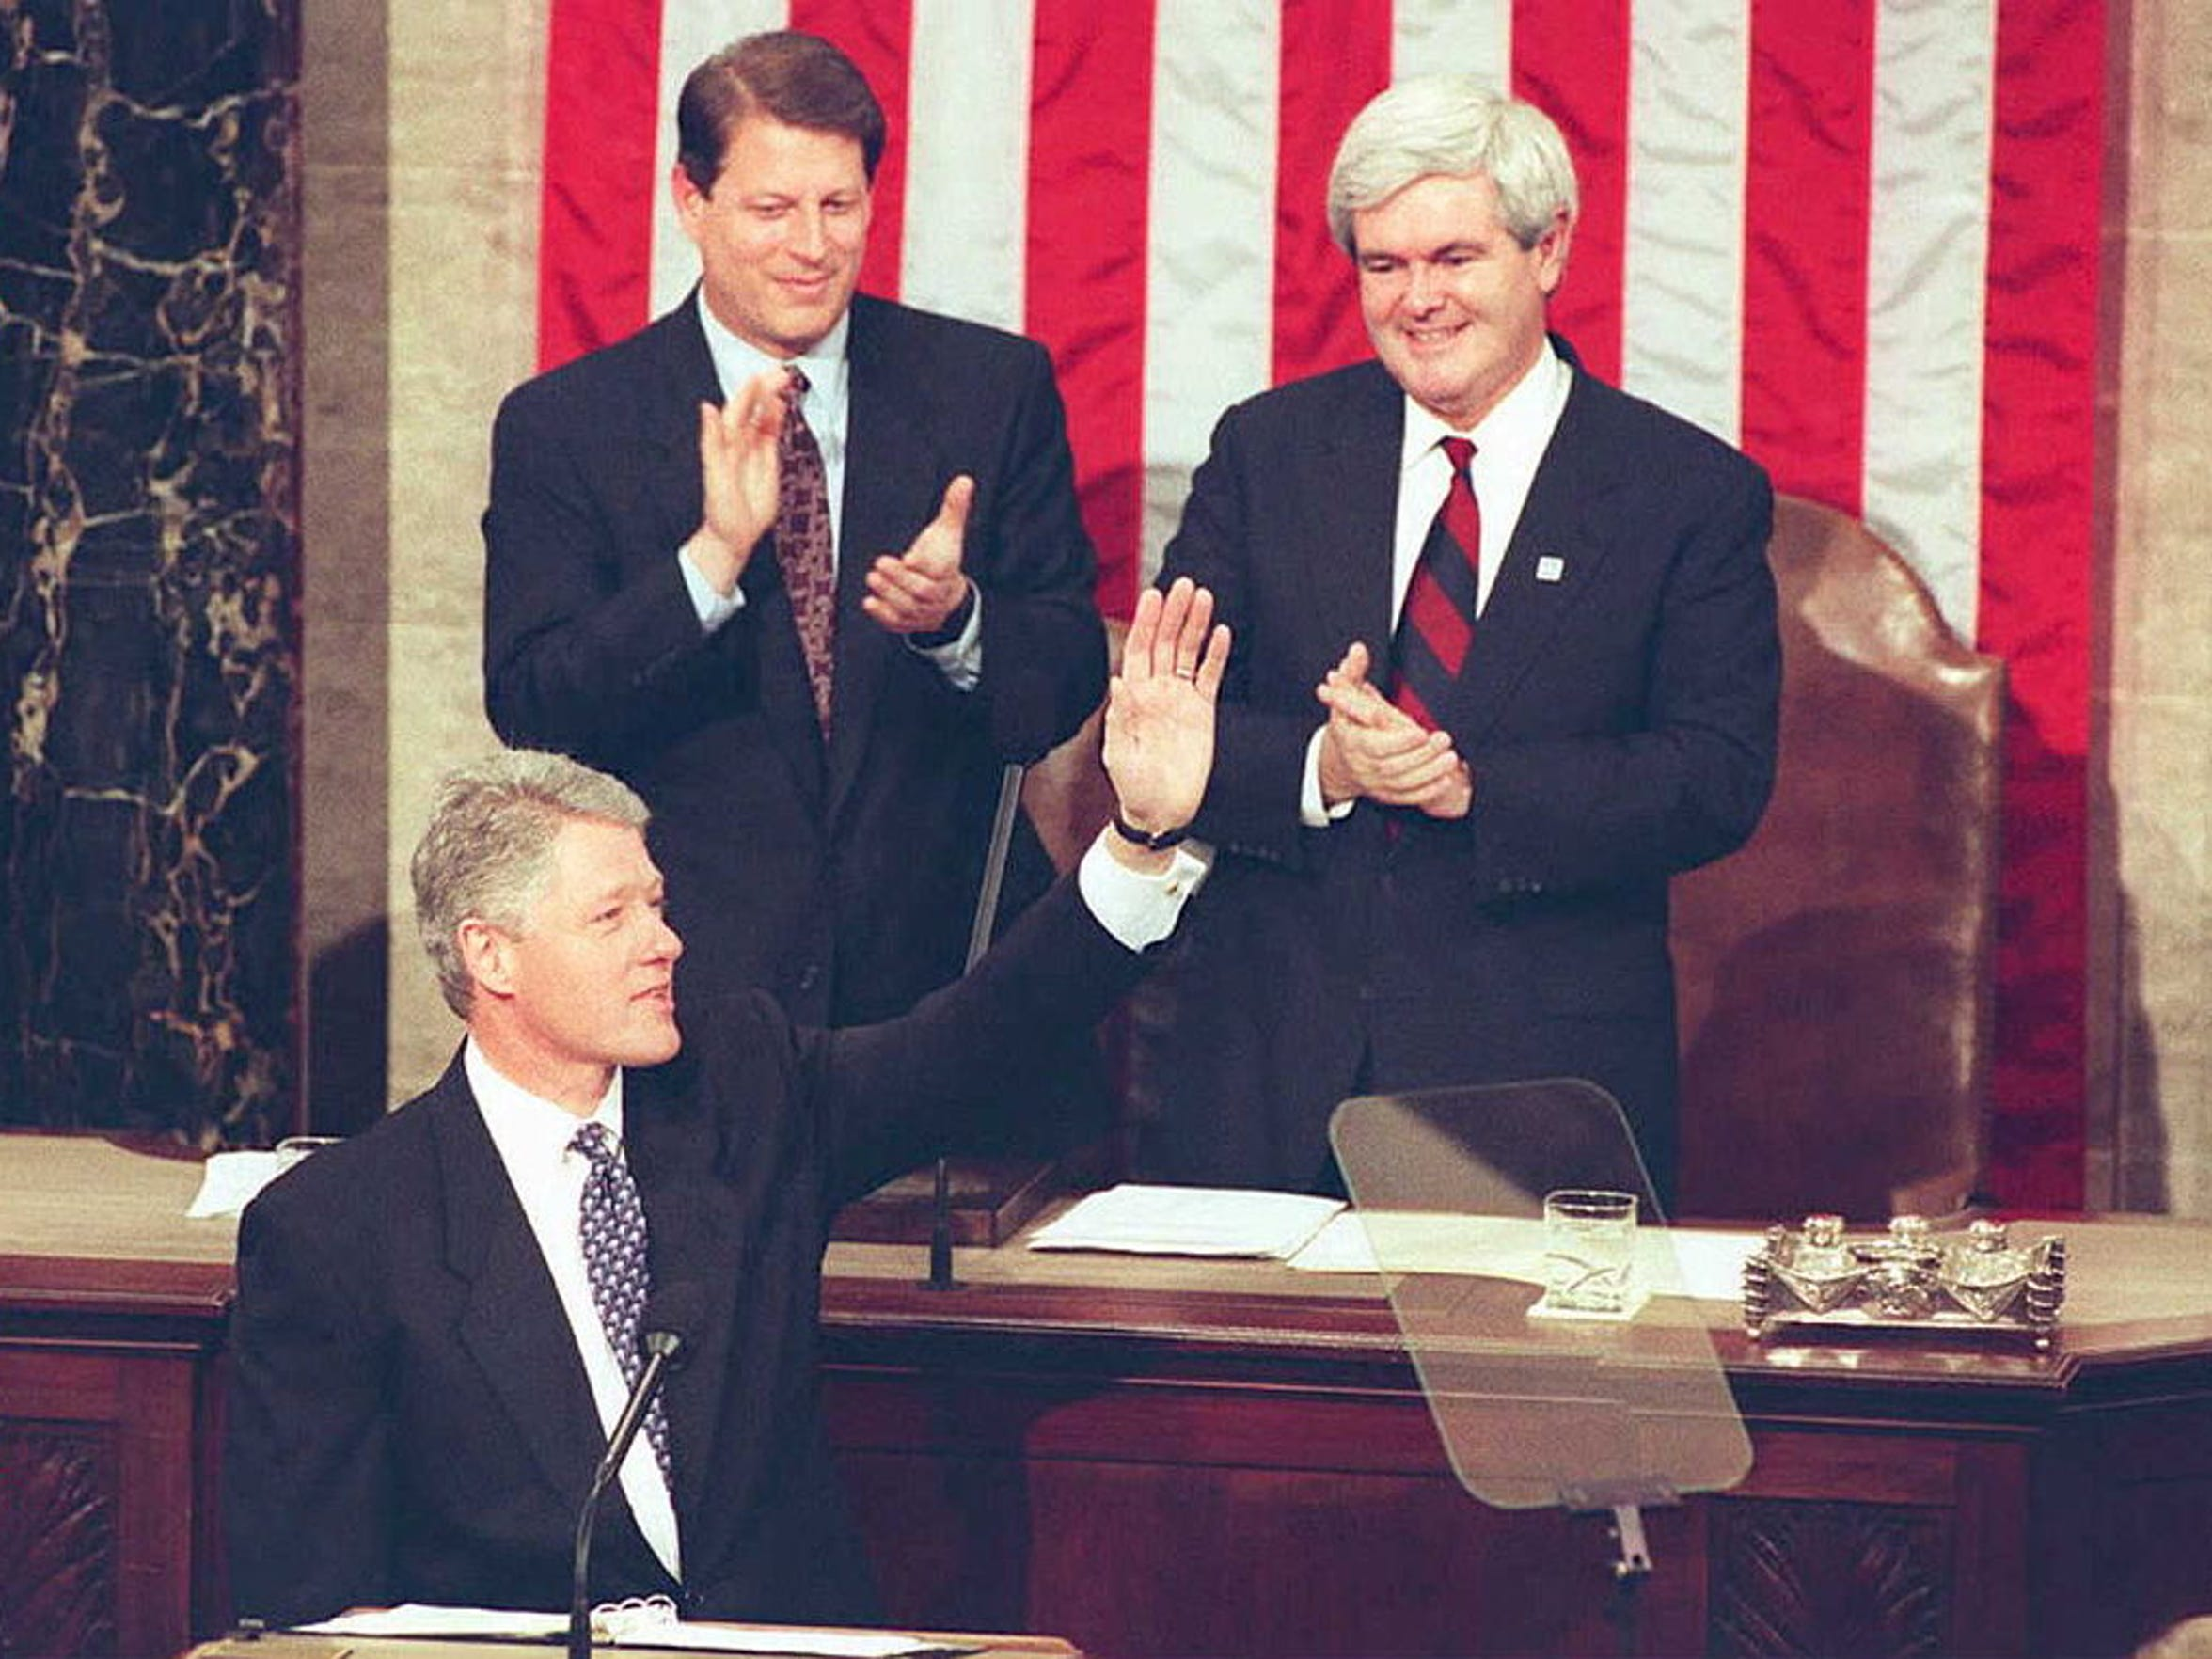 "WASHINGTON, DC - JANUARY 24:  US President Bill Clinton waves to members of Congress 24 January 1995 as Speaker of the House of Representatives Newt Gingrich (above,R) and Vice President Al Gore(above, L) applaud before the beginning his second State of the Union address. In his speech, President Clinton called for a new social compact,  ""to meet the challenges of our times.""   (COLOR KEY: Flag has red stripes.)  AFP PHOTO  (Photo credit should read LUKE FRAZZA/AFP/Getty Images)"